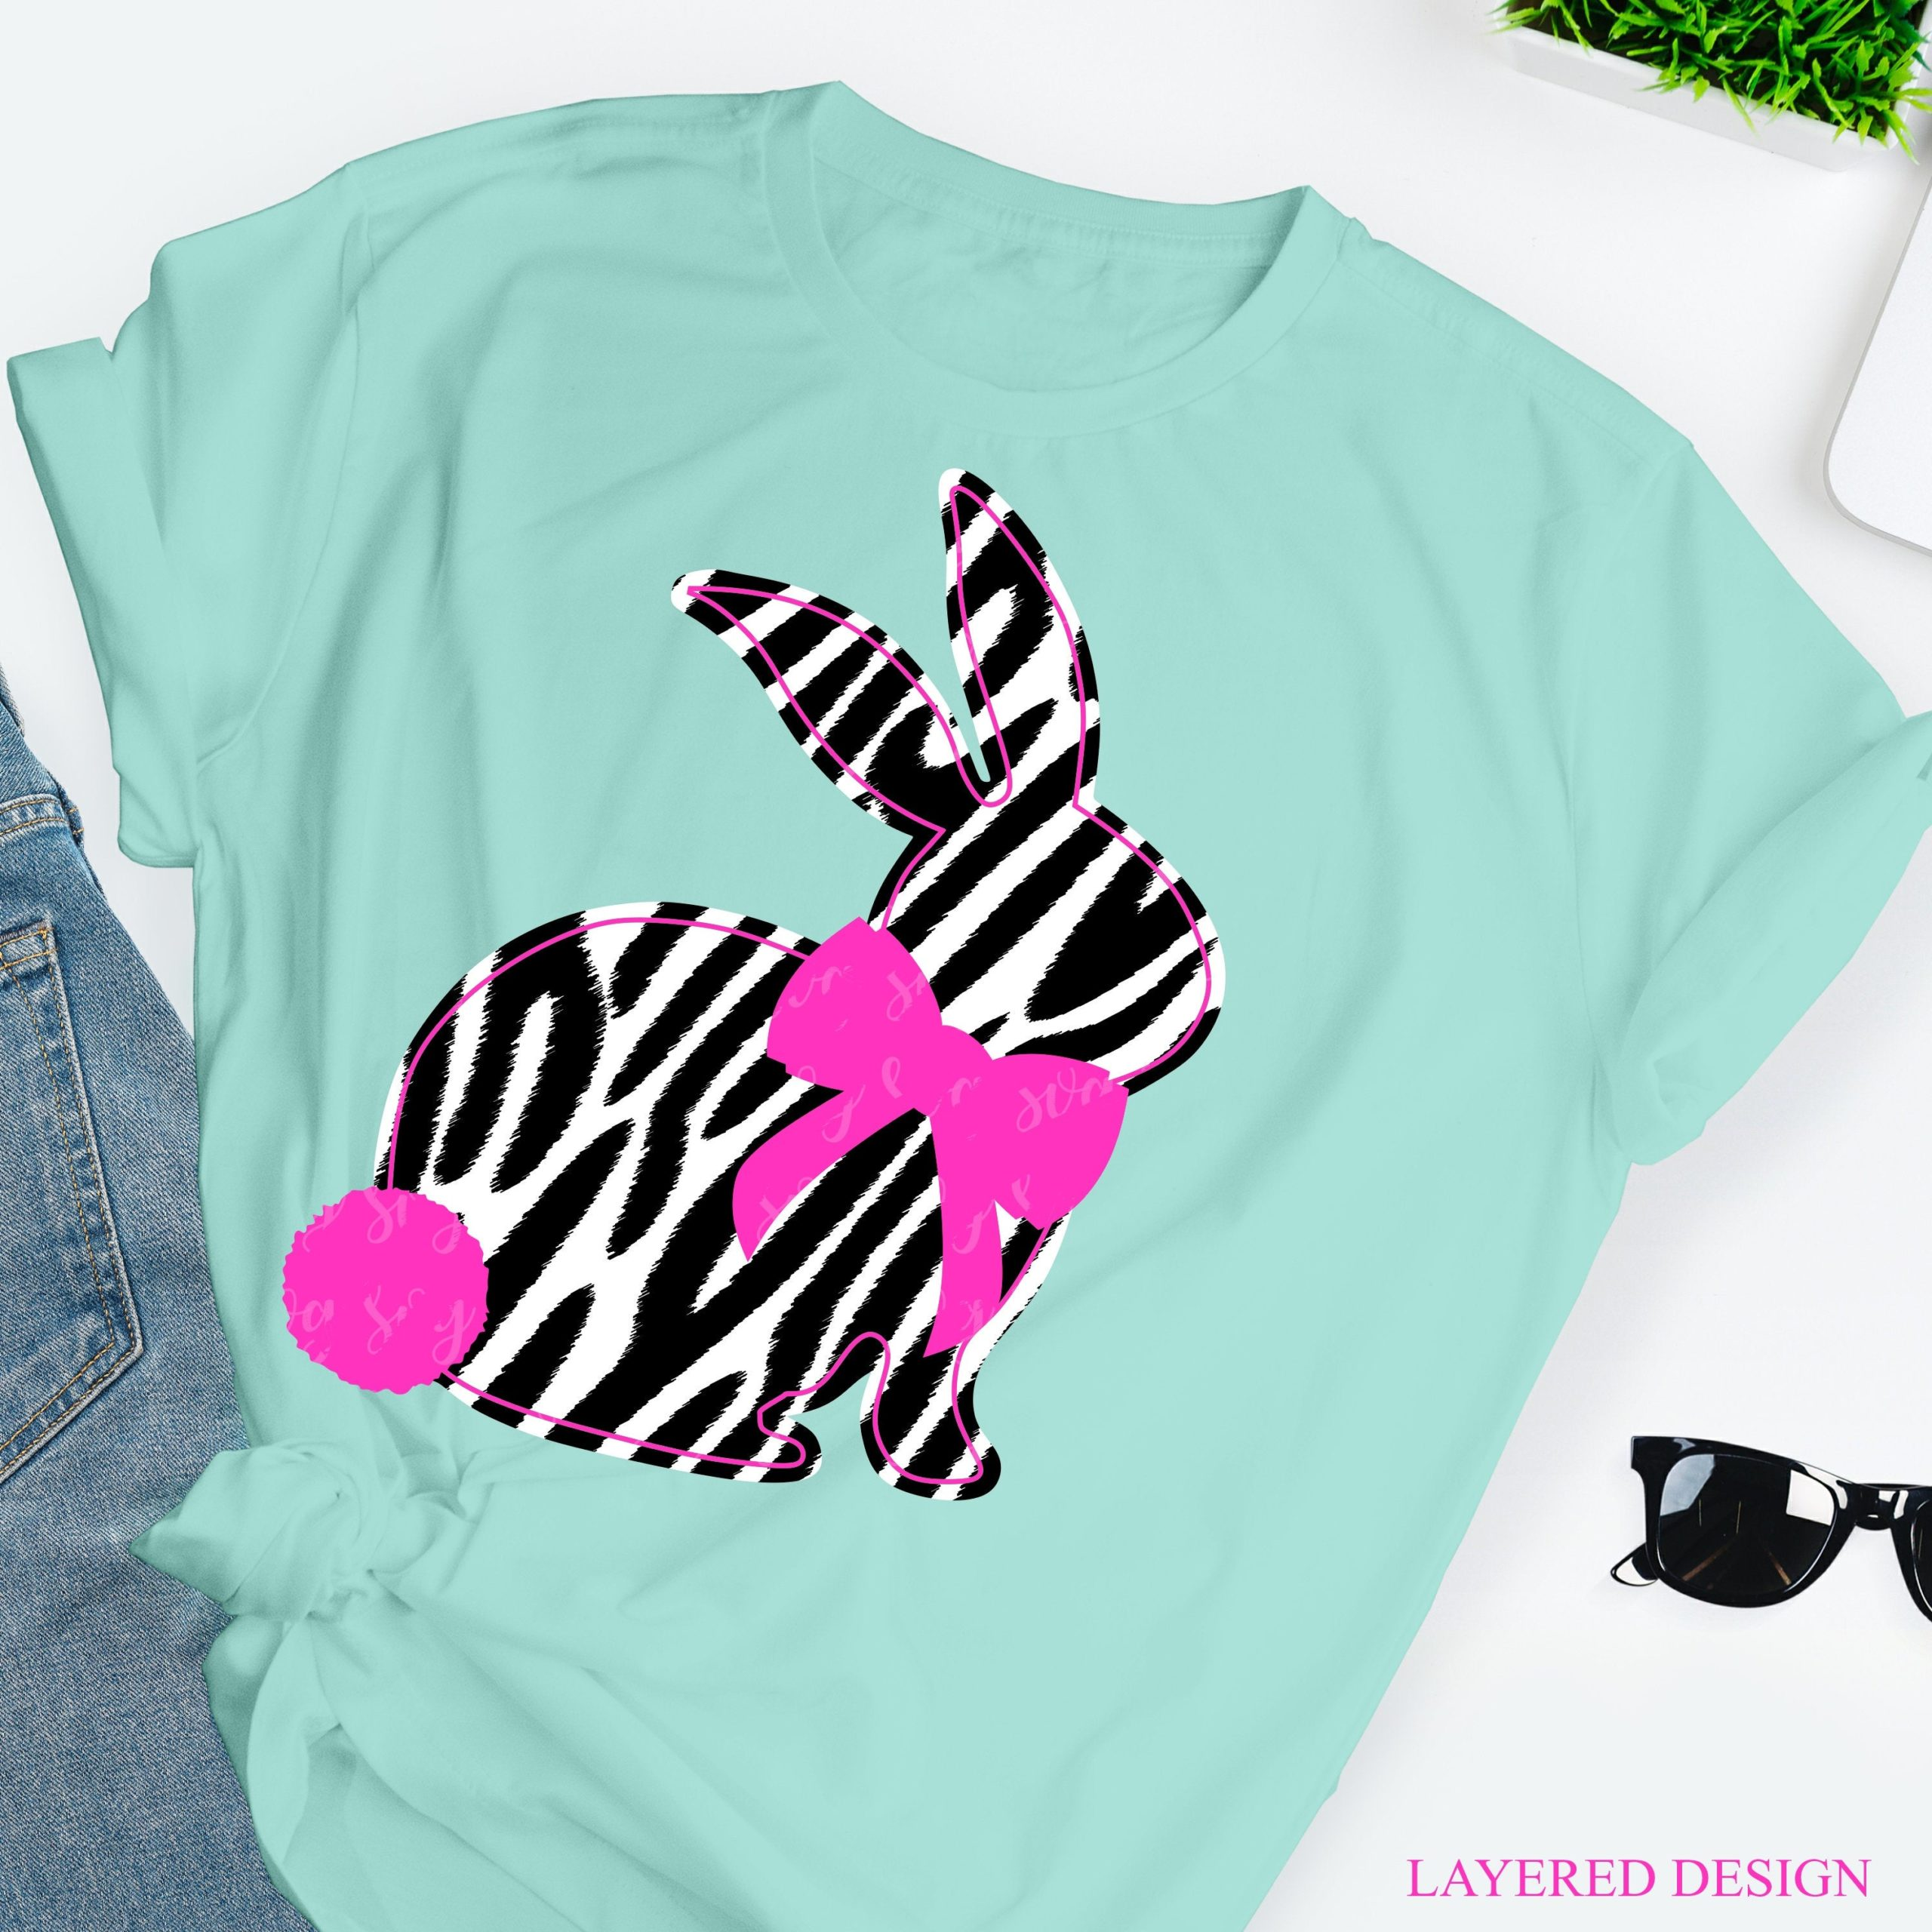 Easter-svg-zebra-print-bunny-svgdxf-png-eps-file-for-cutting-machine-cameo-cricuteaster-svg-designs-easter-cut-file-cricut-svg-60513bb7